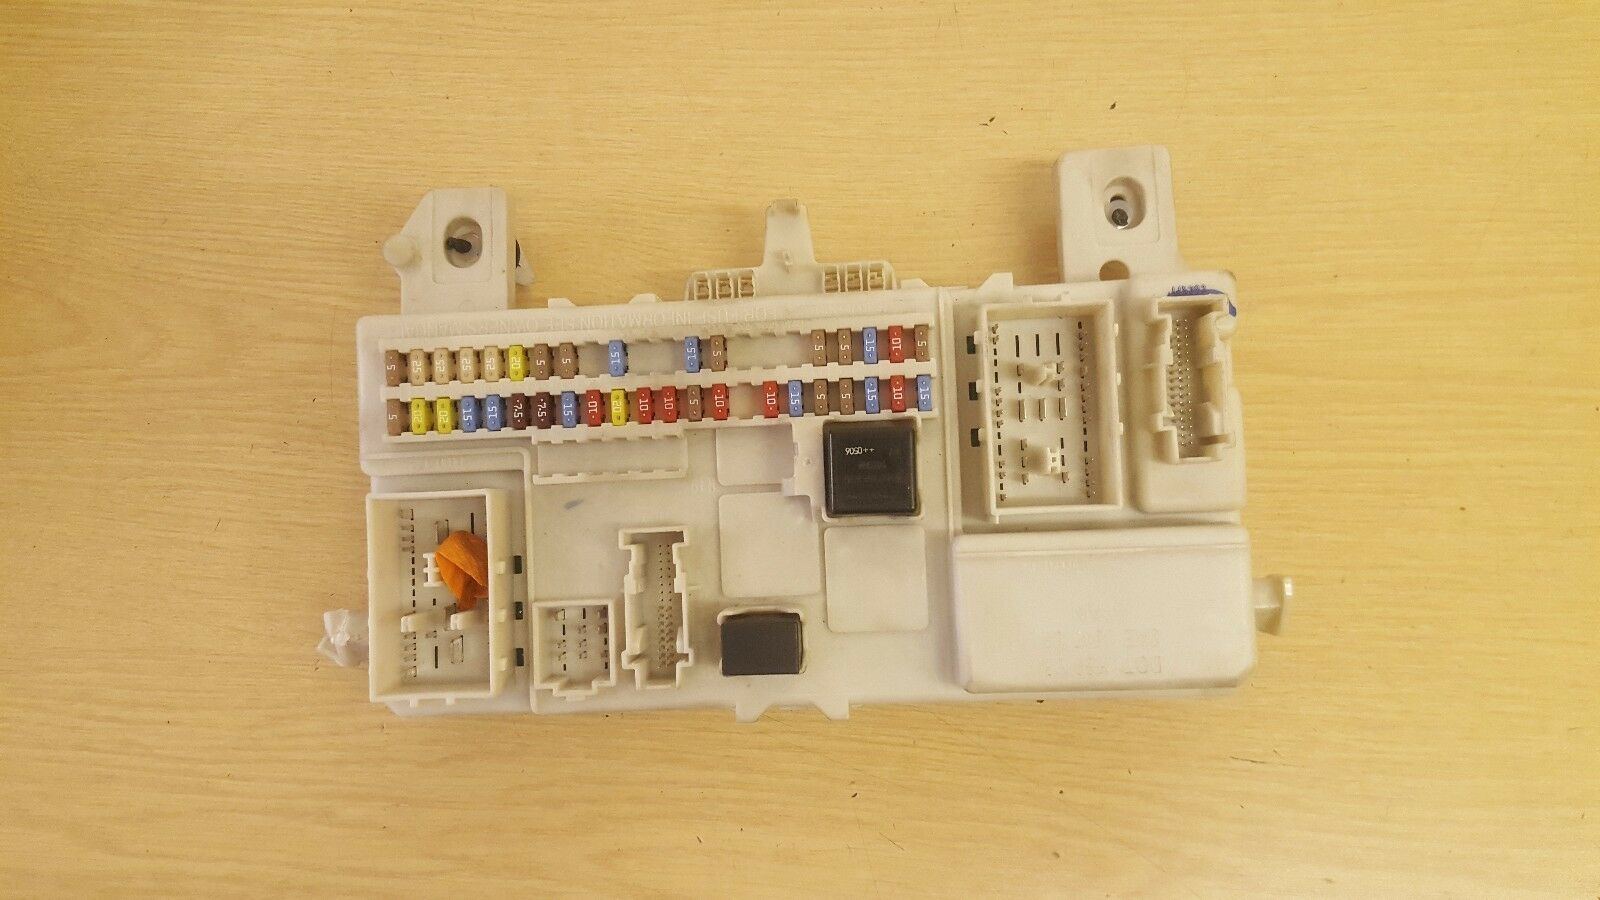 Genuine Volvo S40 V50 Fuse Box 8690722 11050 Picclick Uk Location 1 Of 3only Available